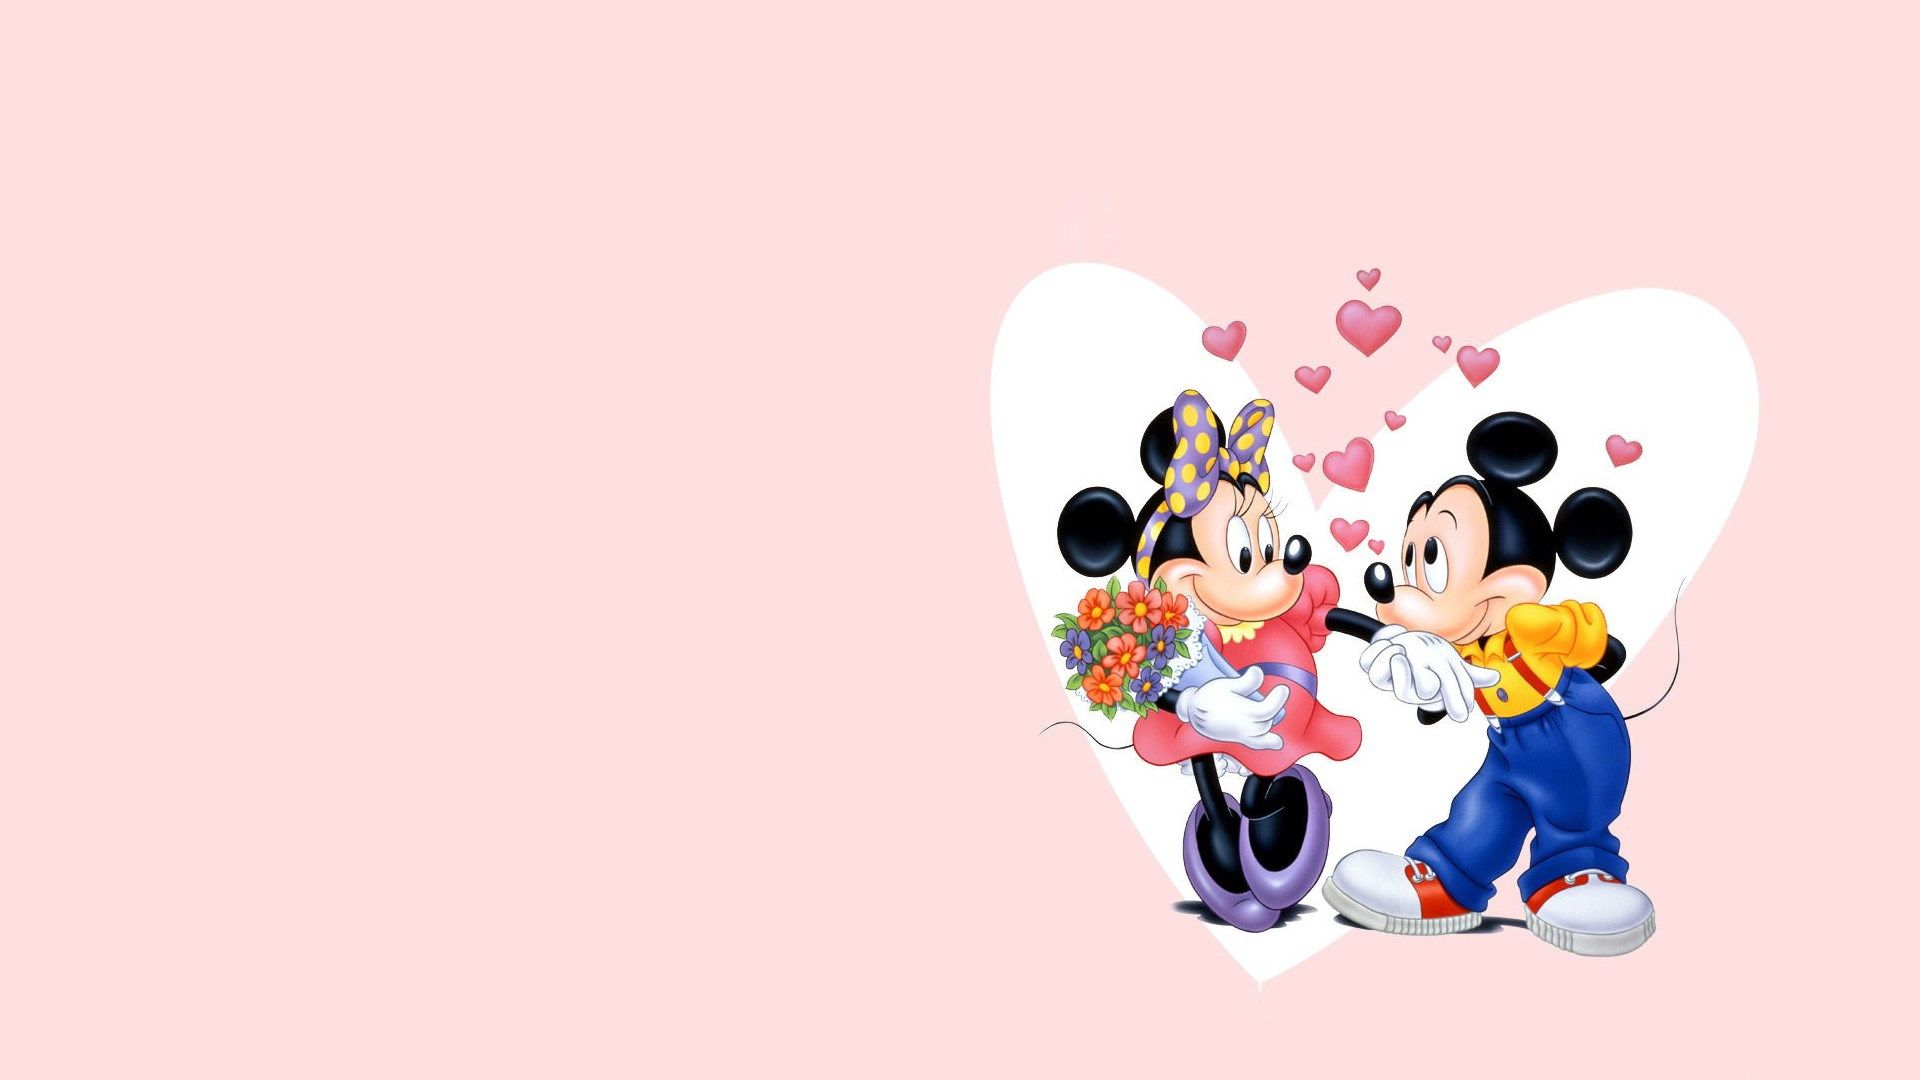 Mickey Minnie Mouse Disney Characters